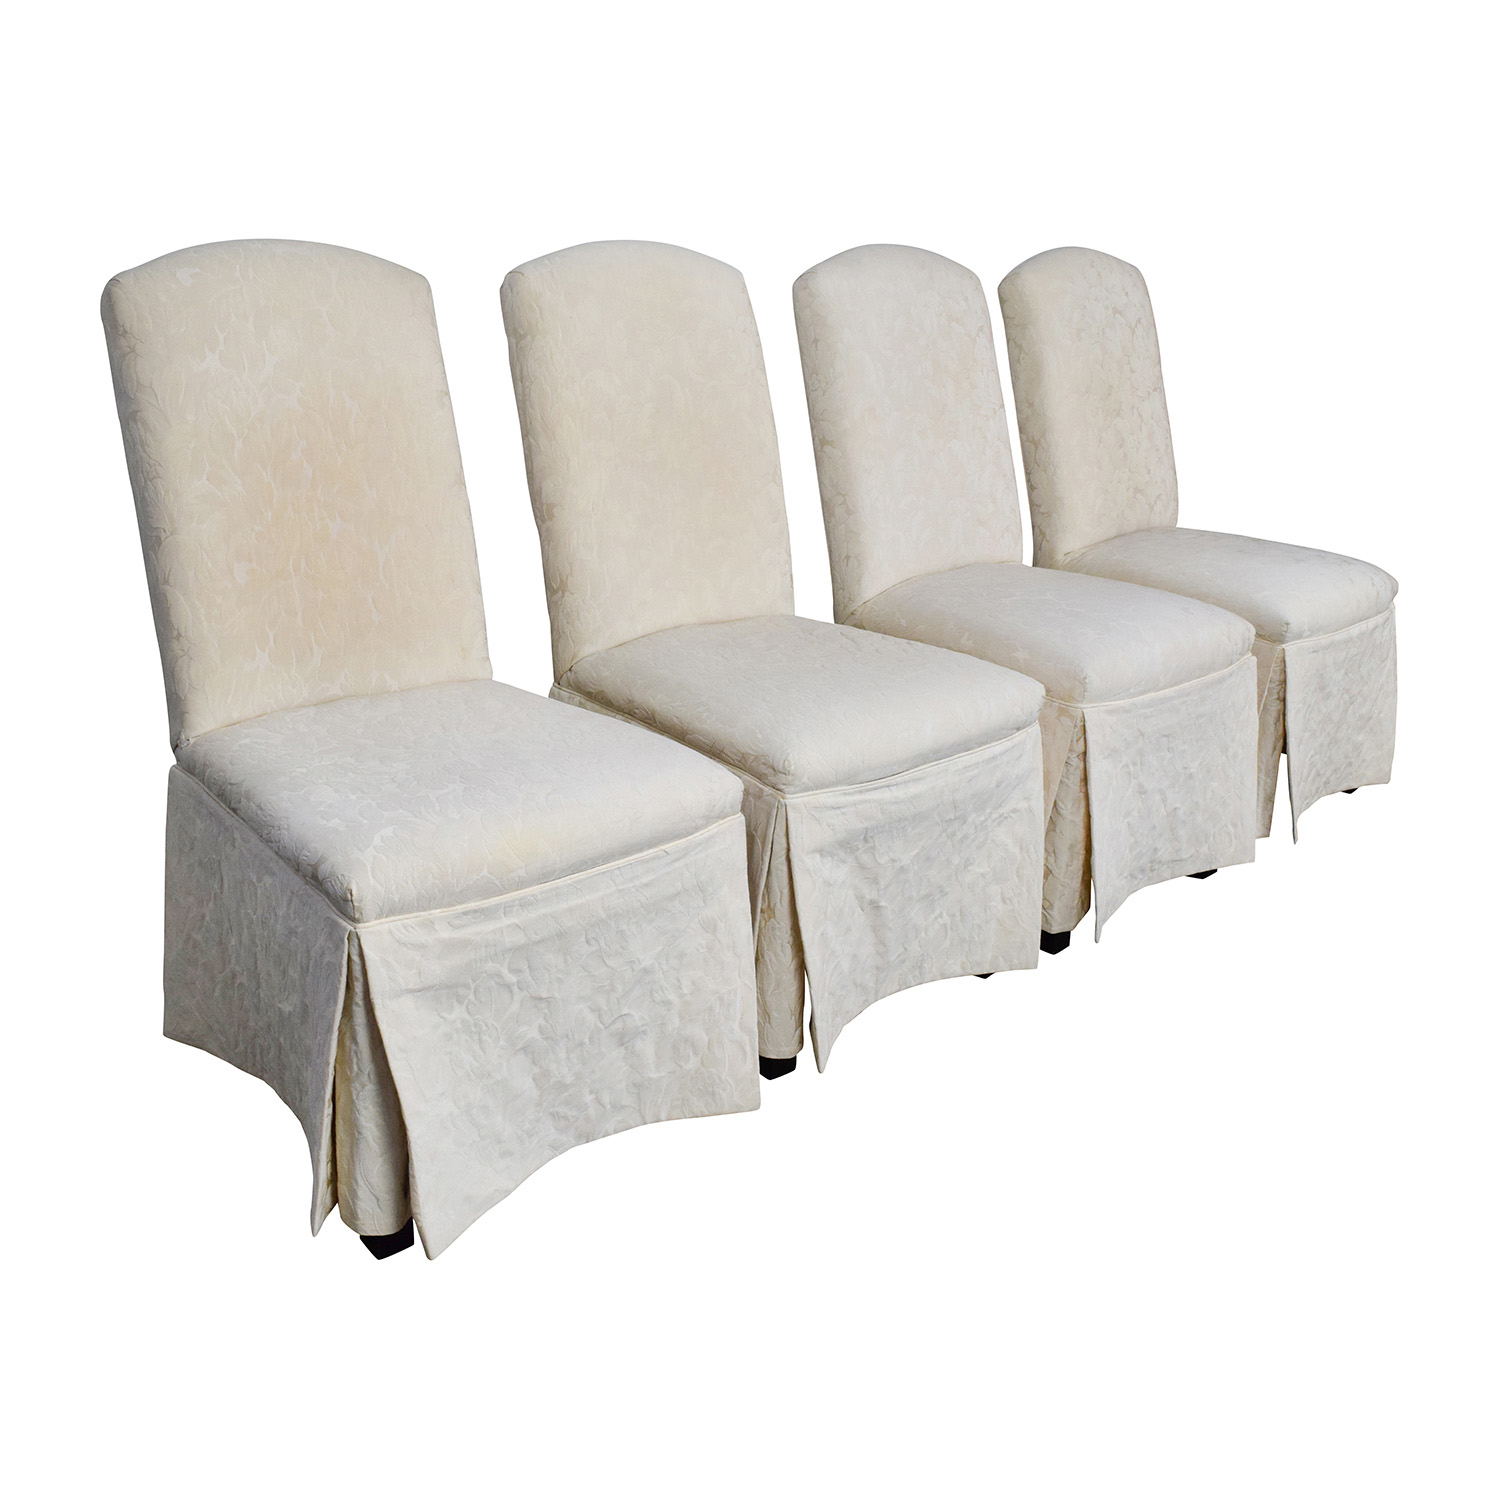 Ivory Dining Chairs 90 Off Thomasville Thomasville Ivory Upholstered Dining